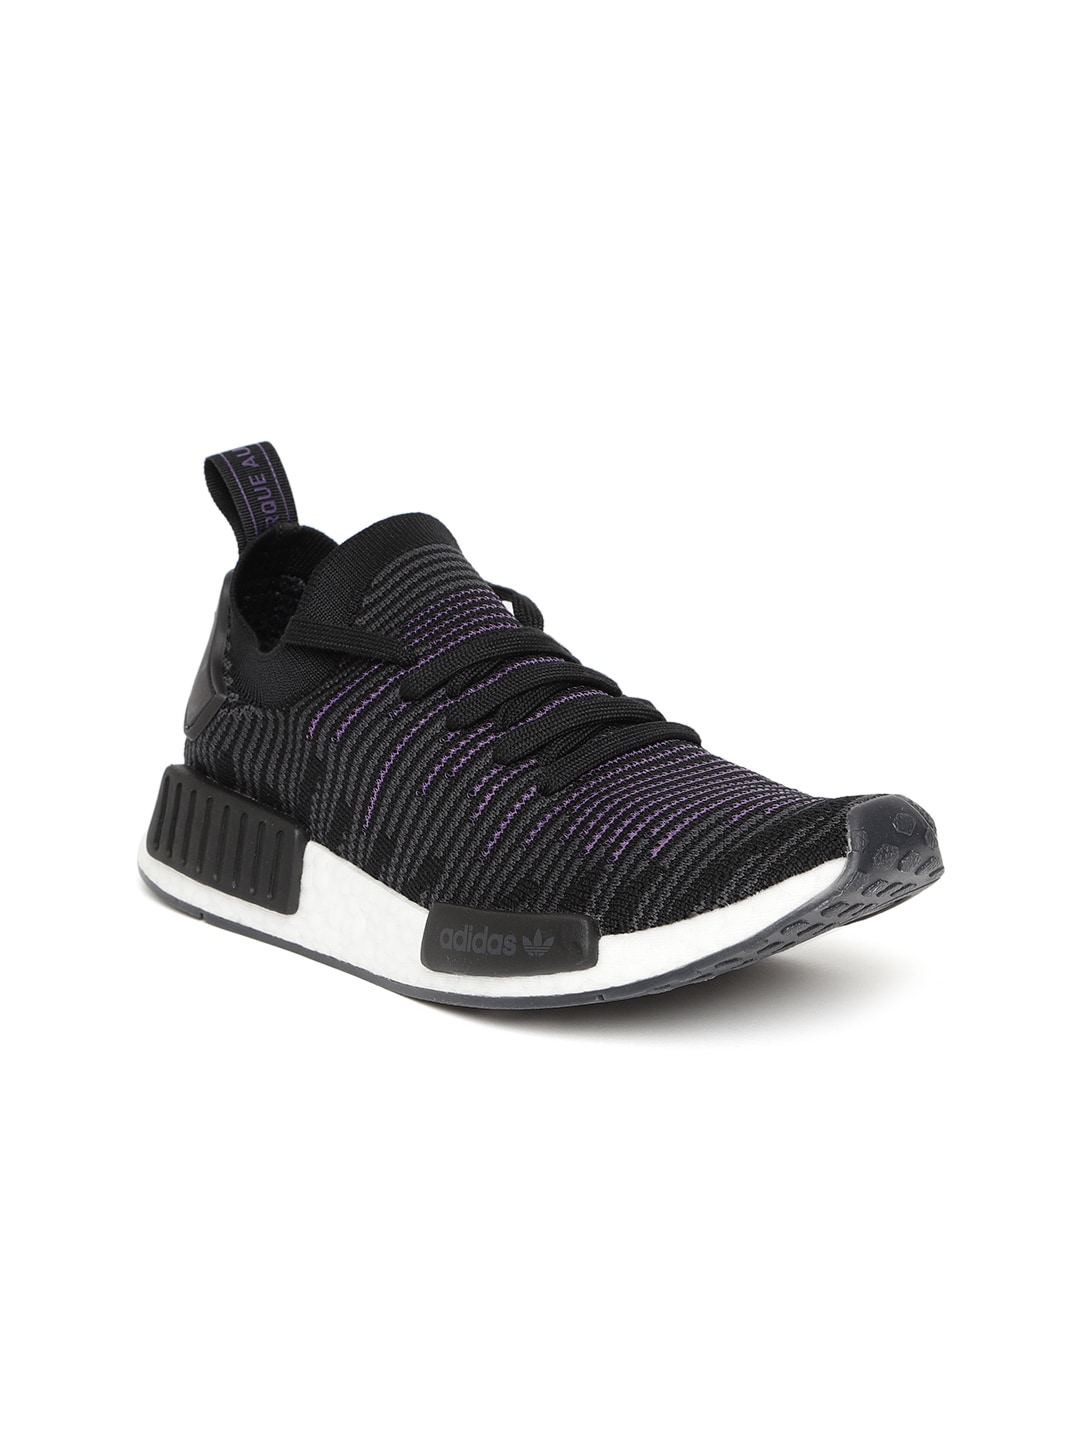 7997da5a3c01c Adidas Originals - Buy Adidas Originals Products Online